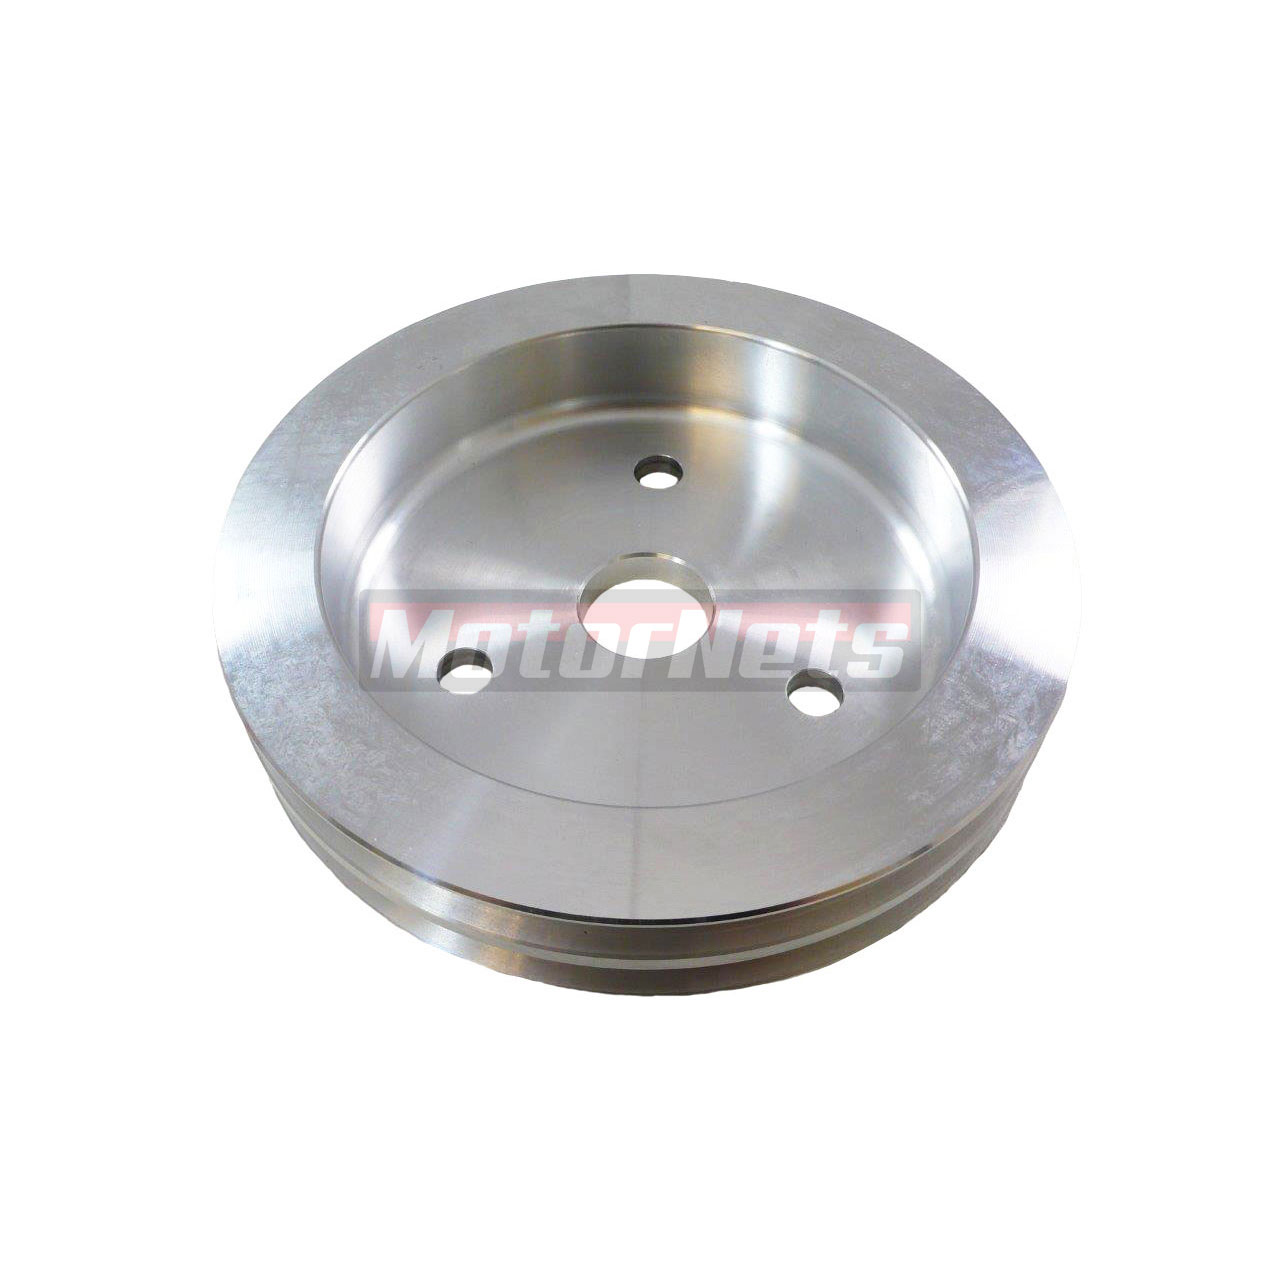 SB Chevy Satin Aluminum Crankshaft Pulley 2 Grooves SWP